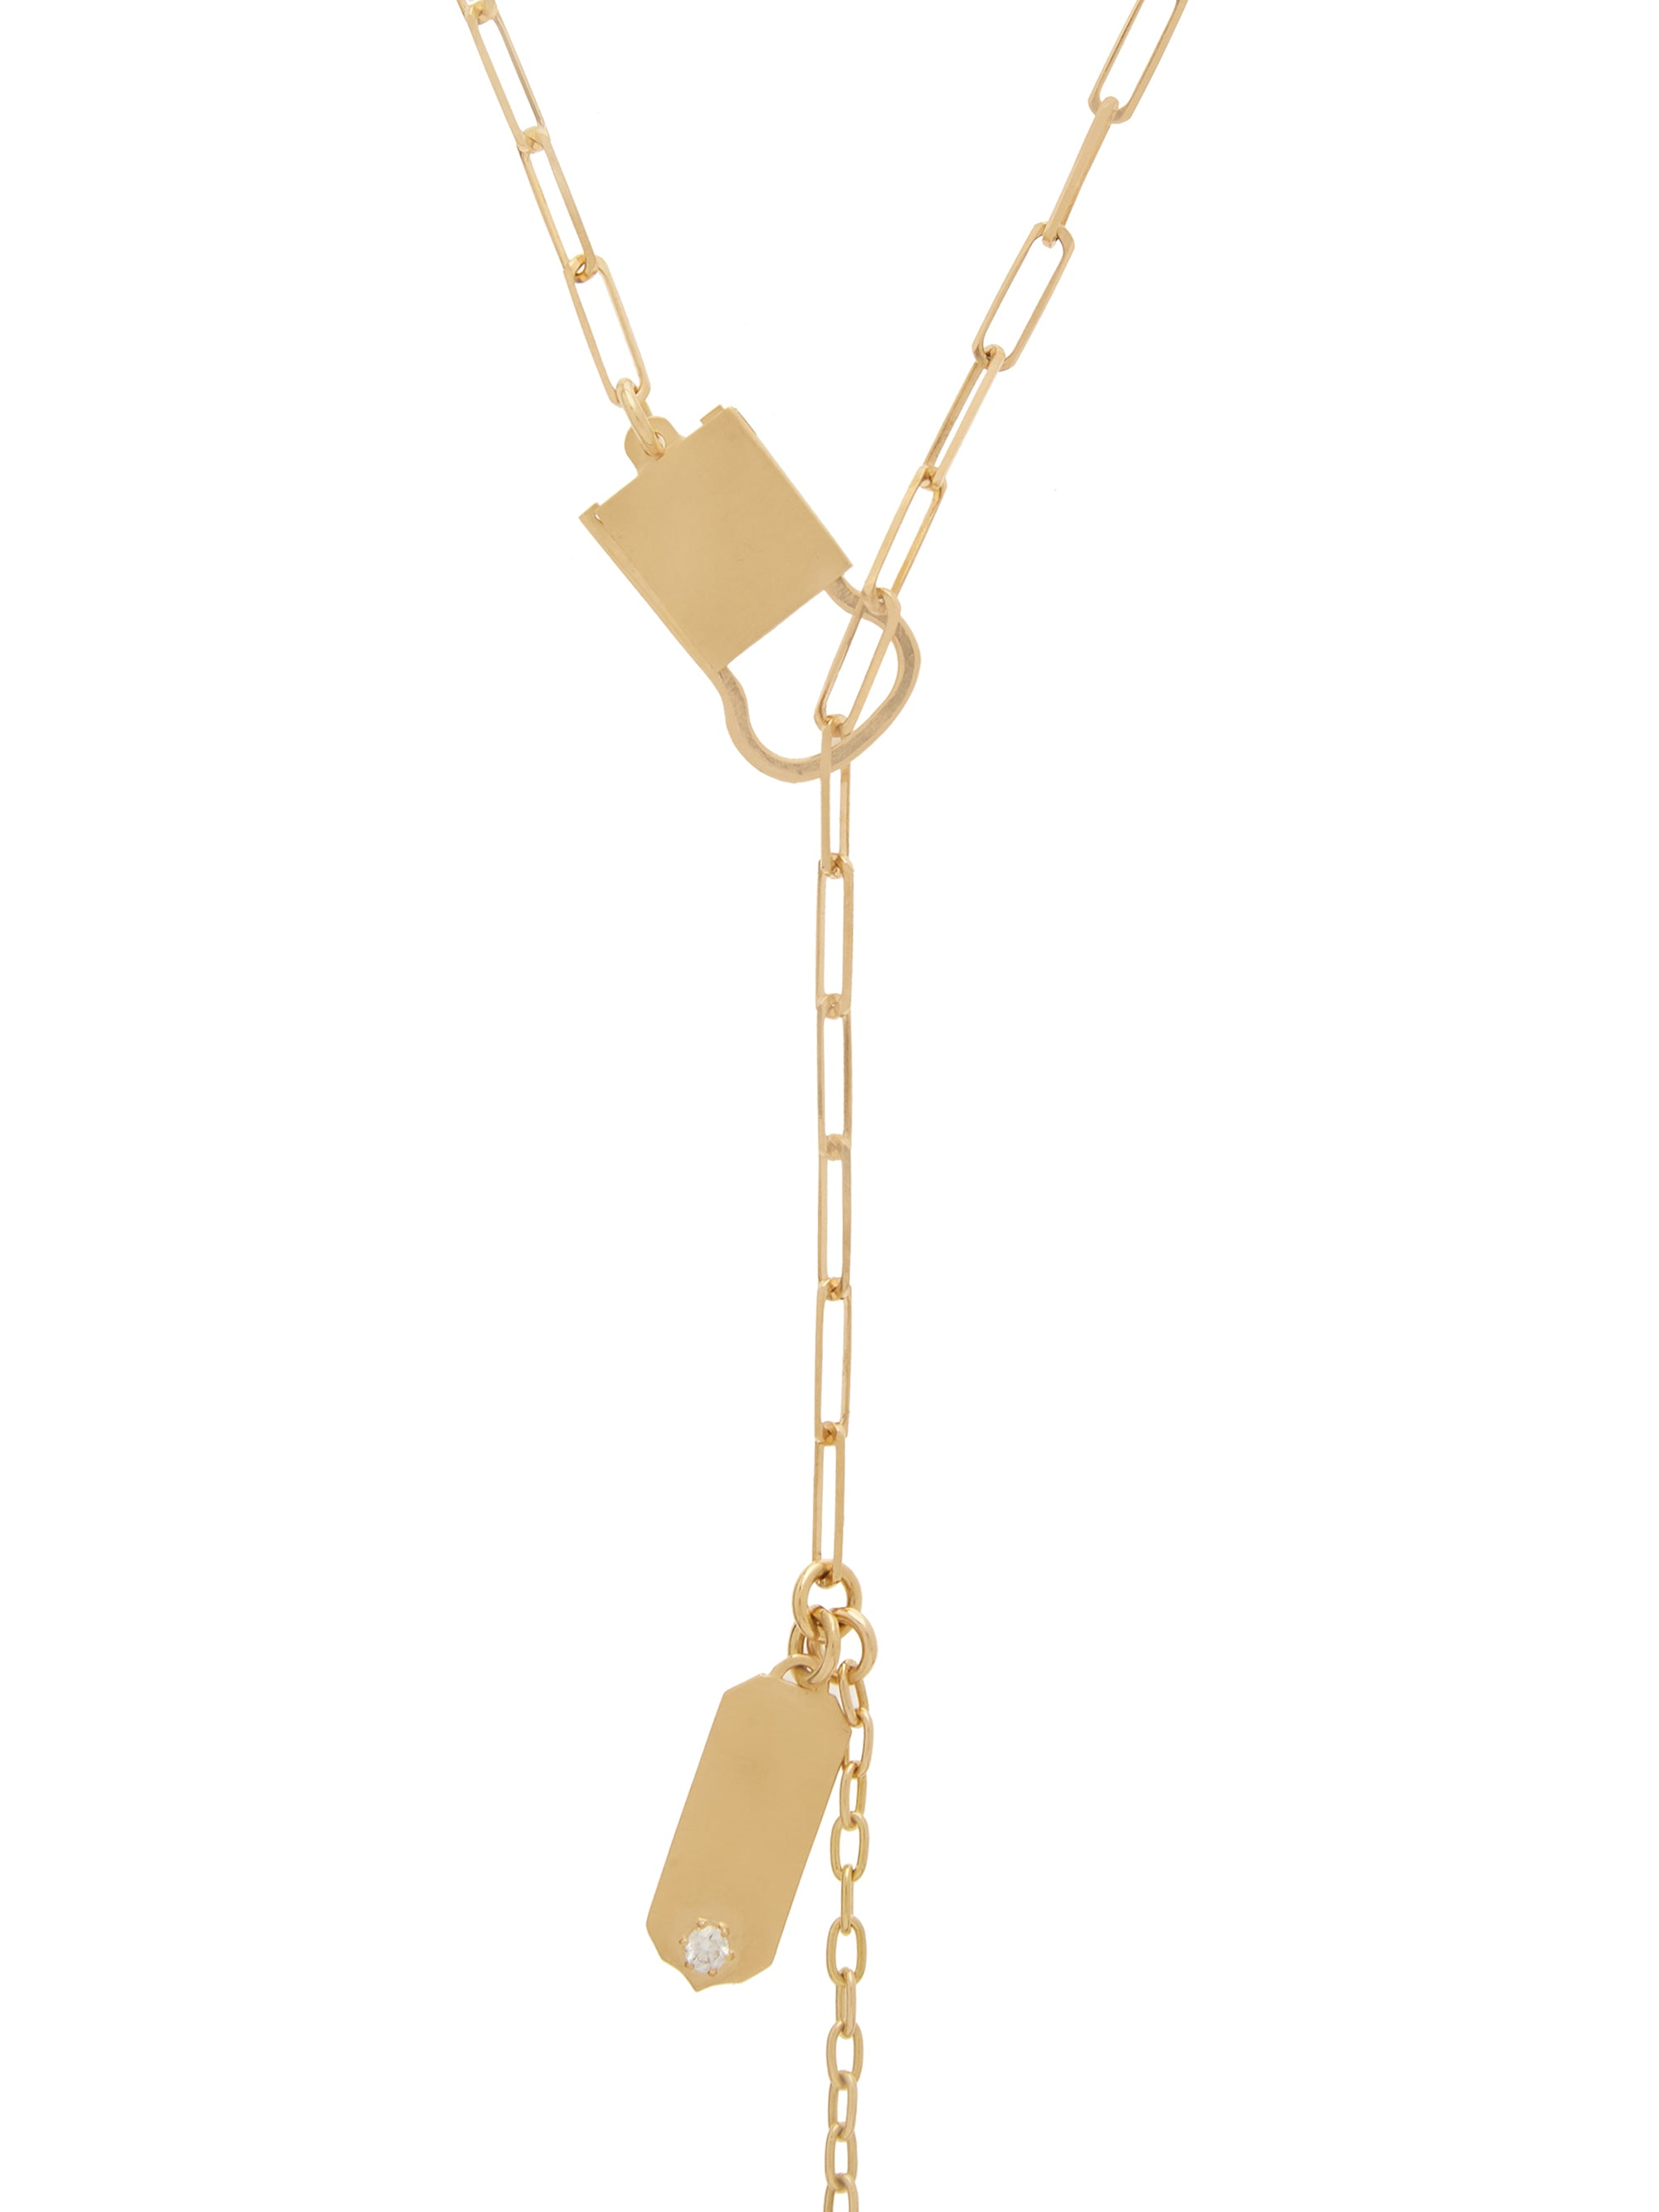 Jade Trau Betty Necklace in 18K Yellow Gold